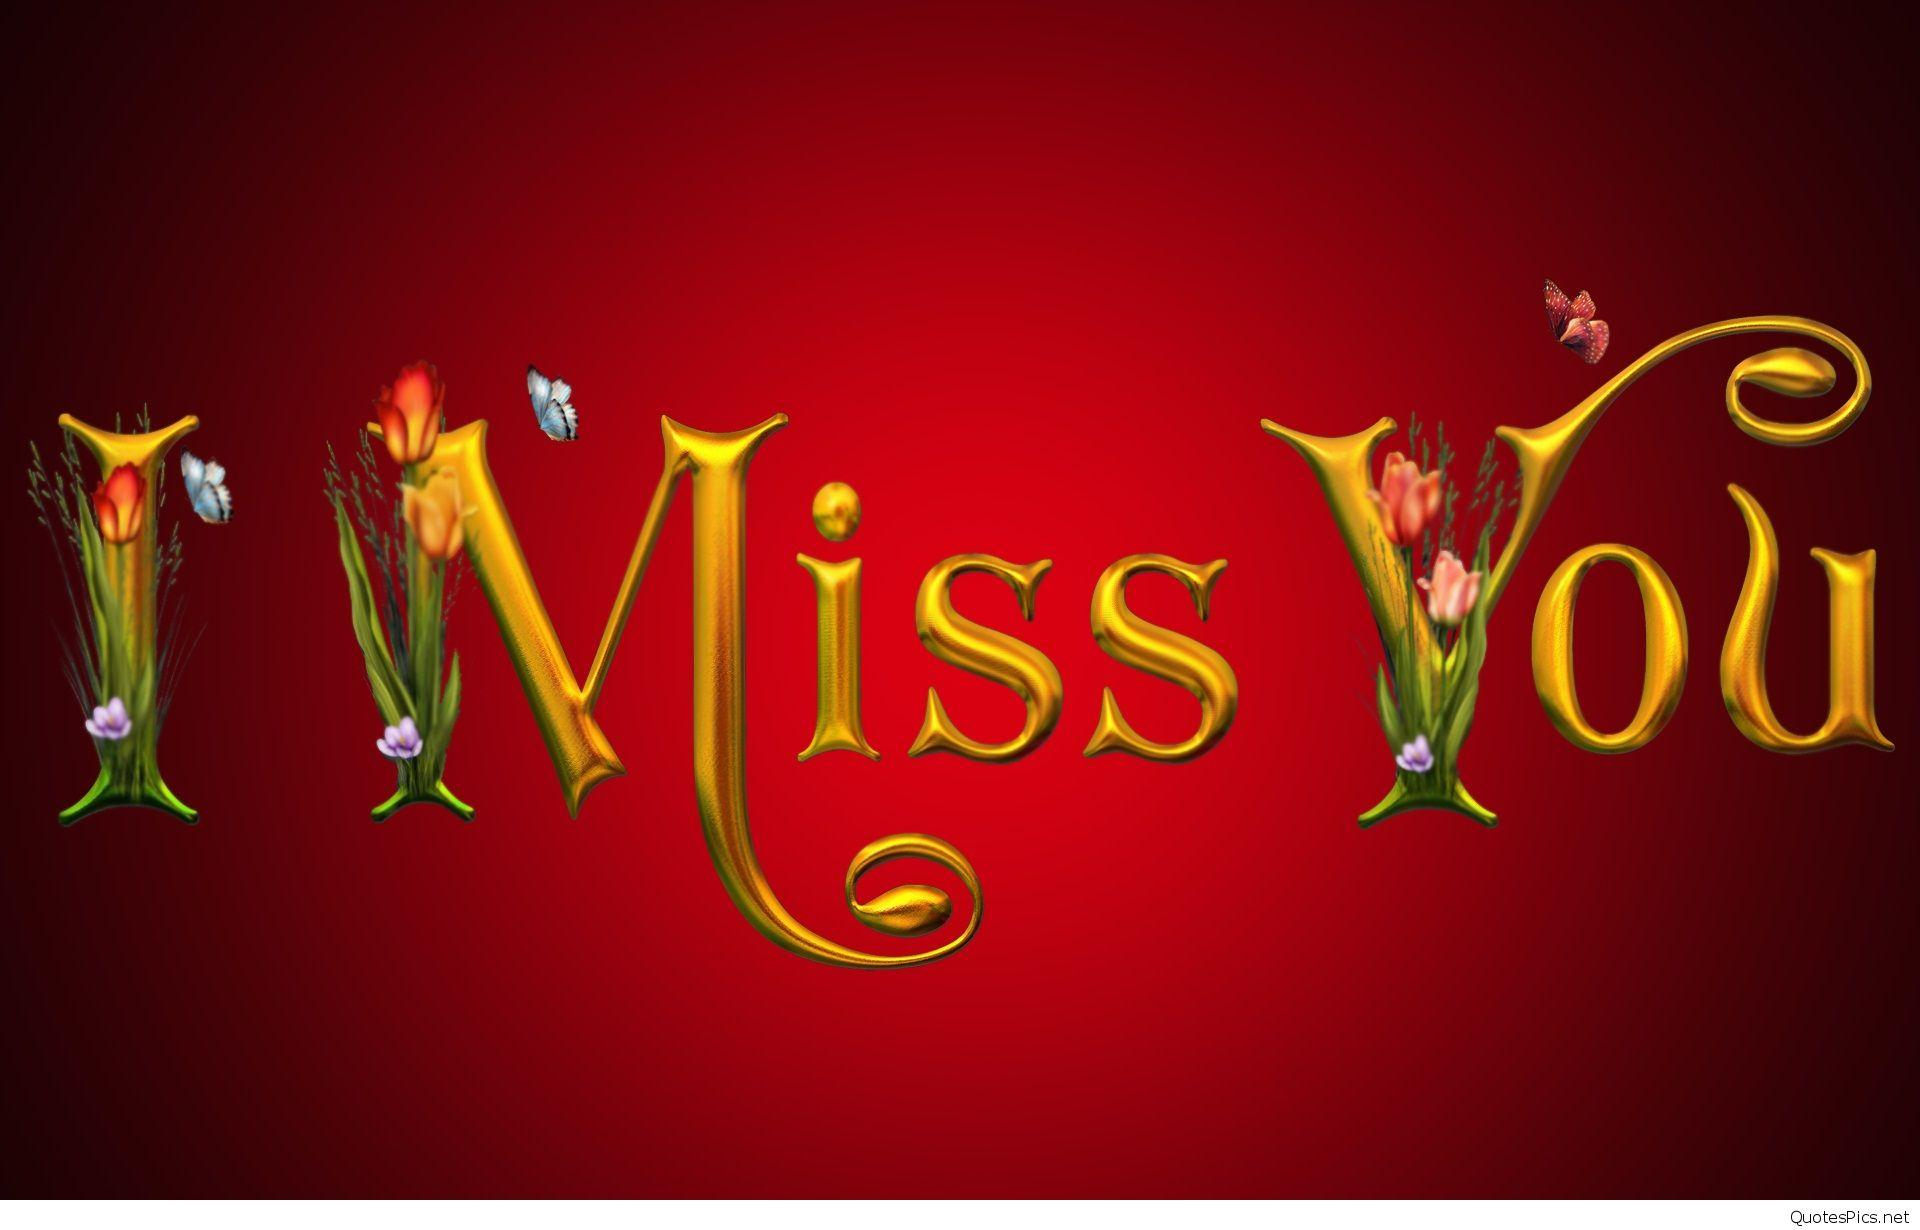 HD I Miss You Wallpapers sayings for him or her